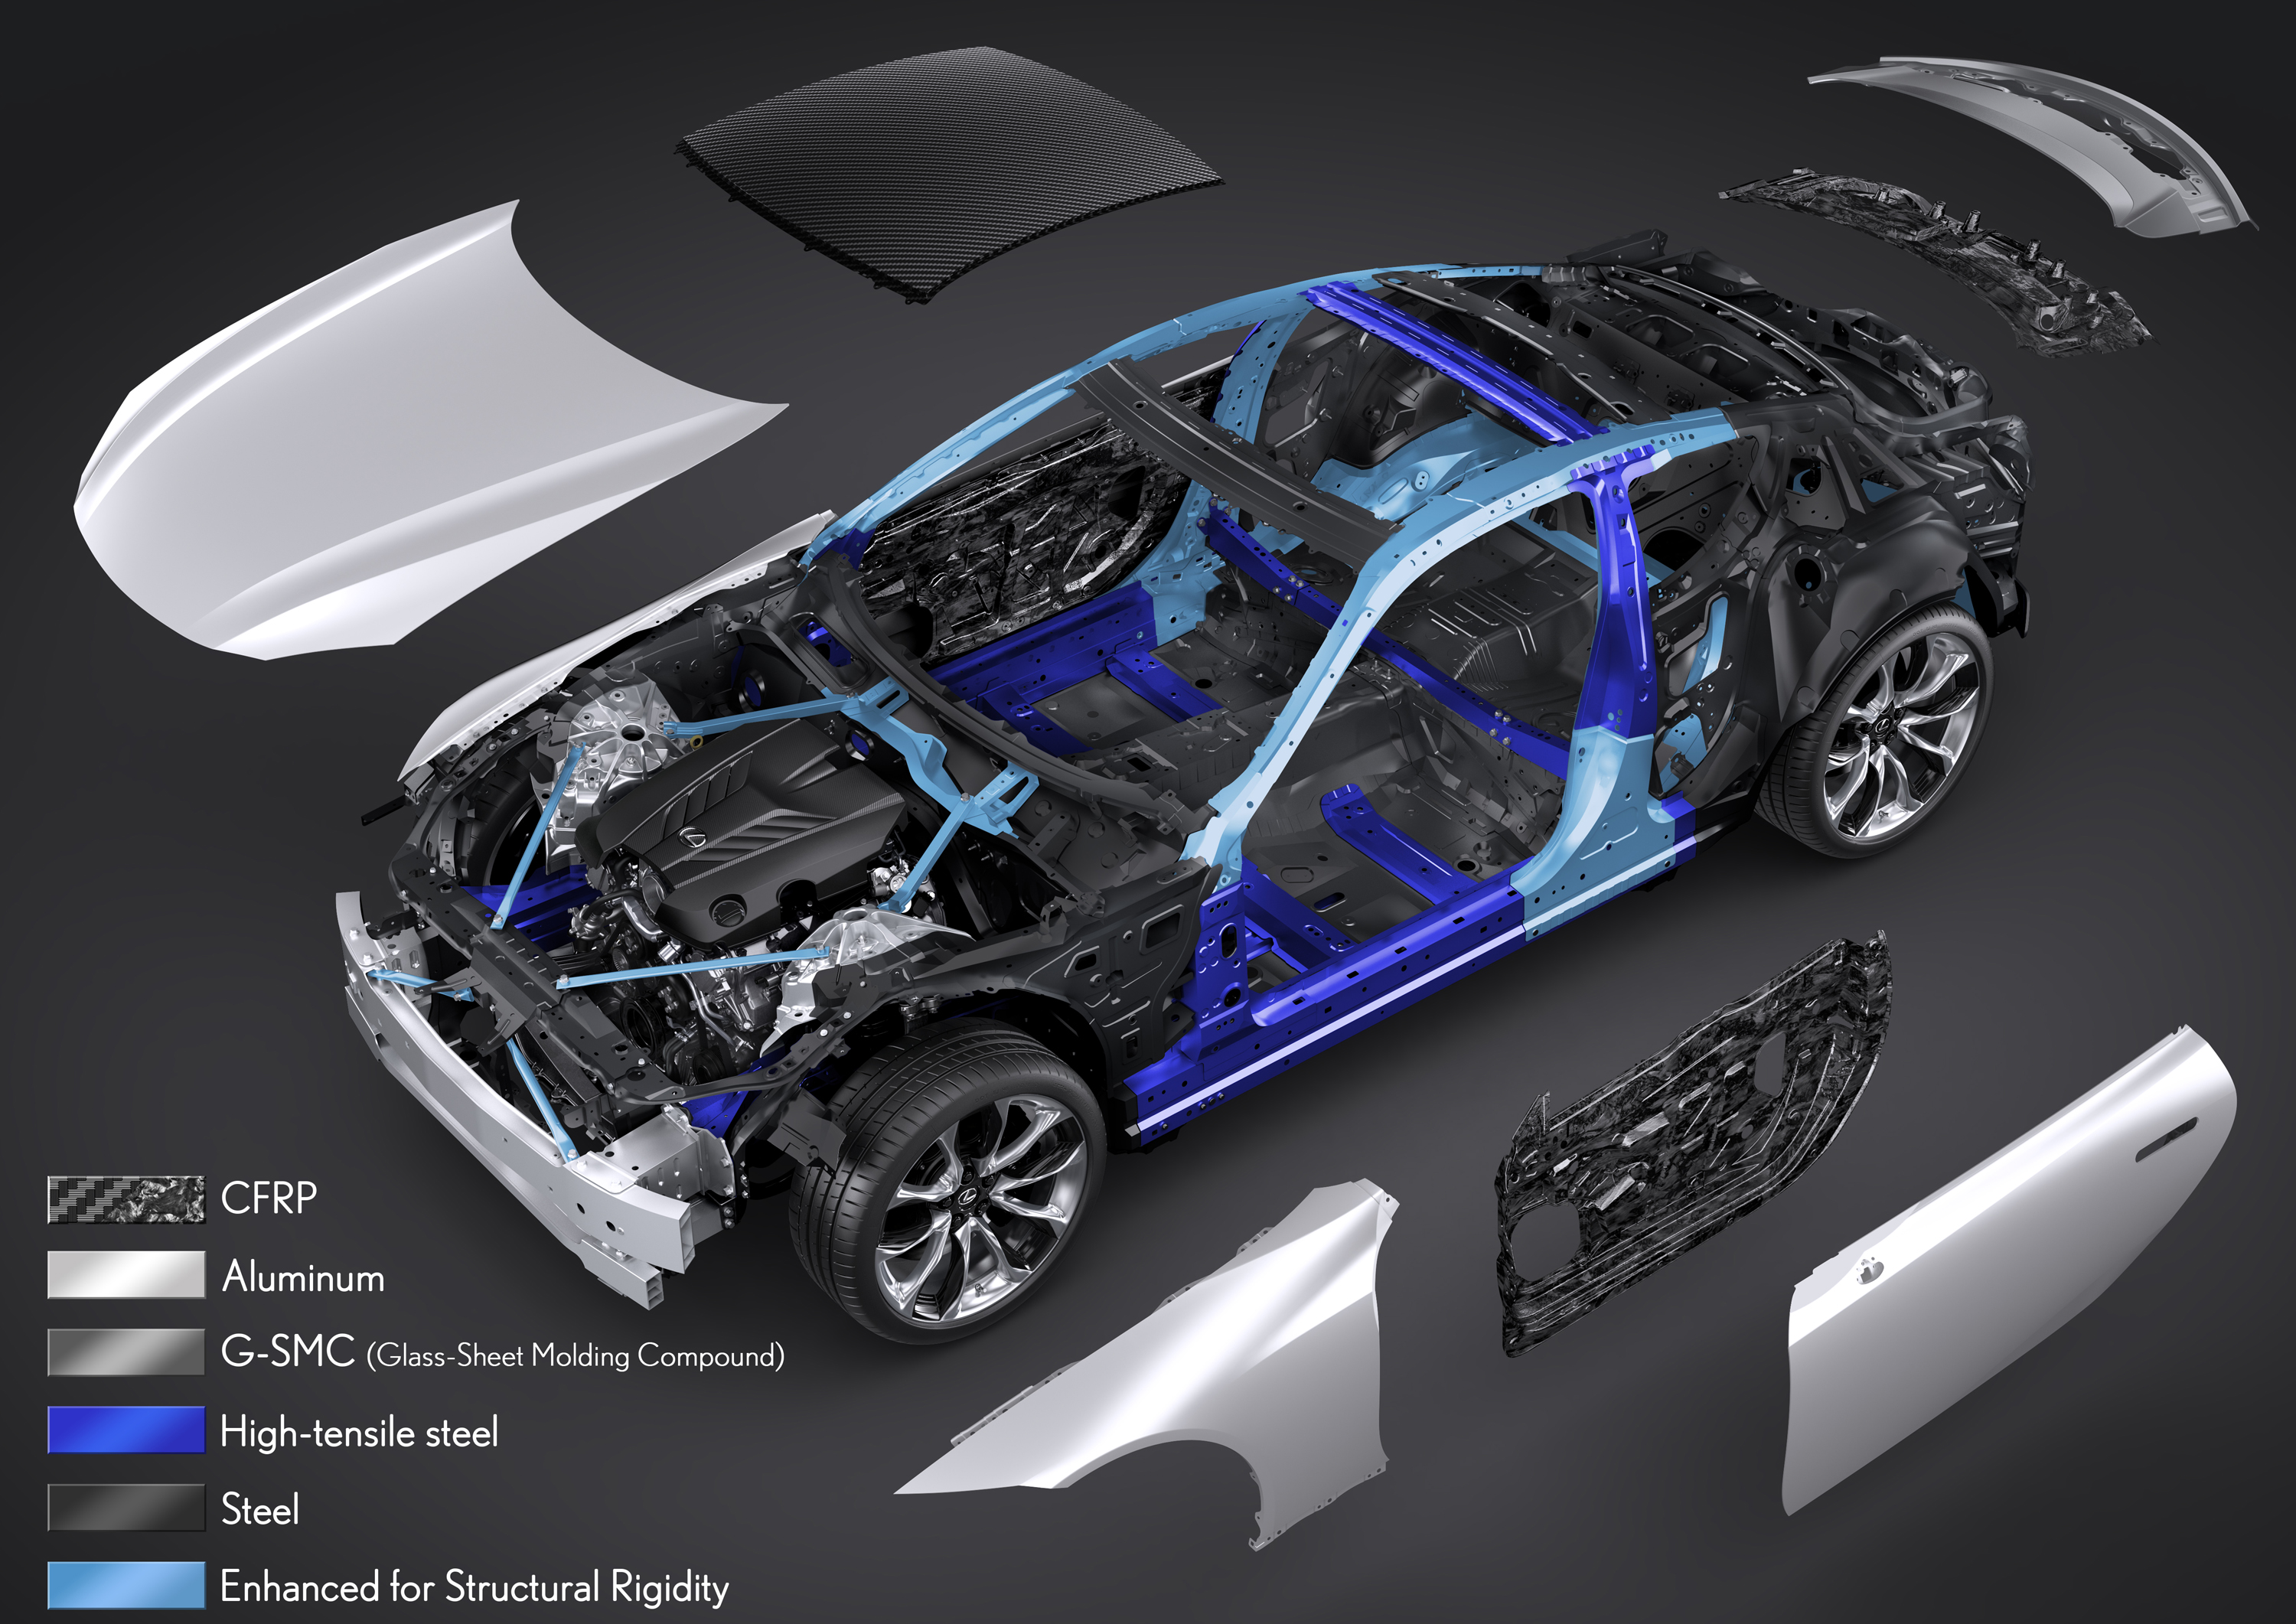 Fundamental material of vehicle frame is the key for lightweight vehicle